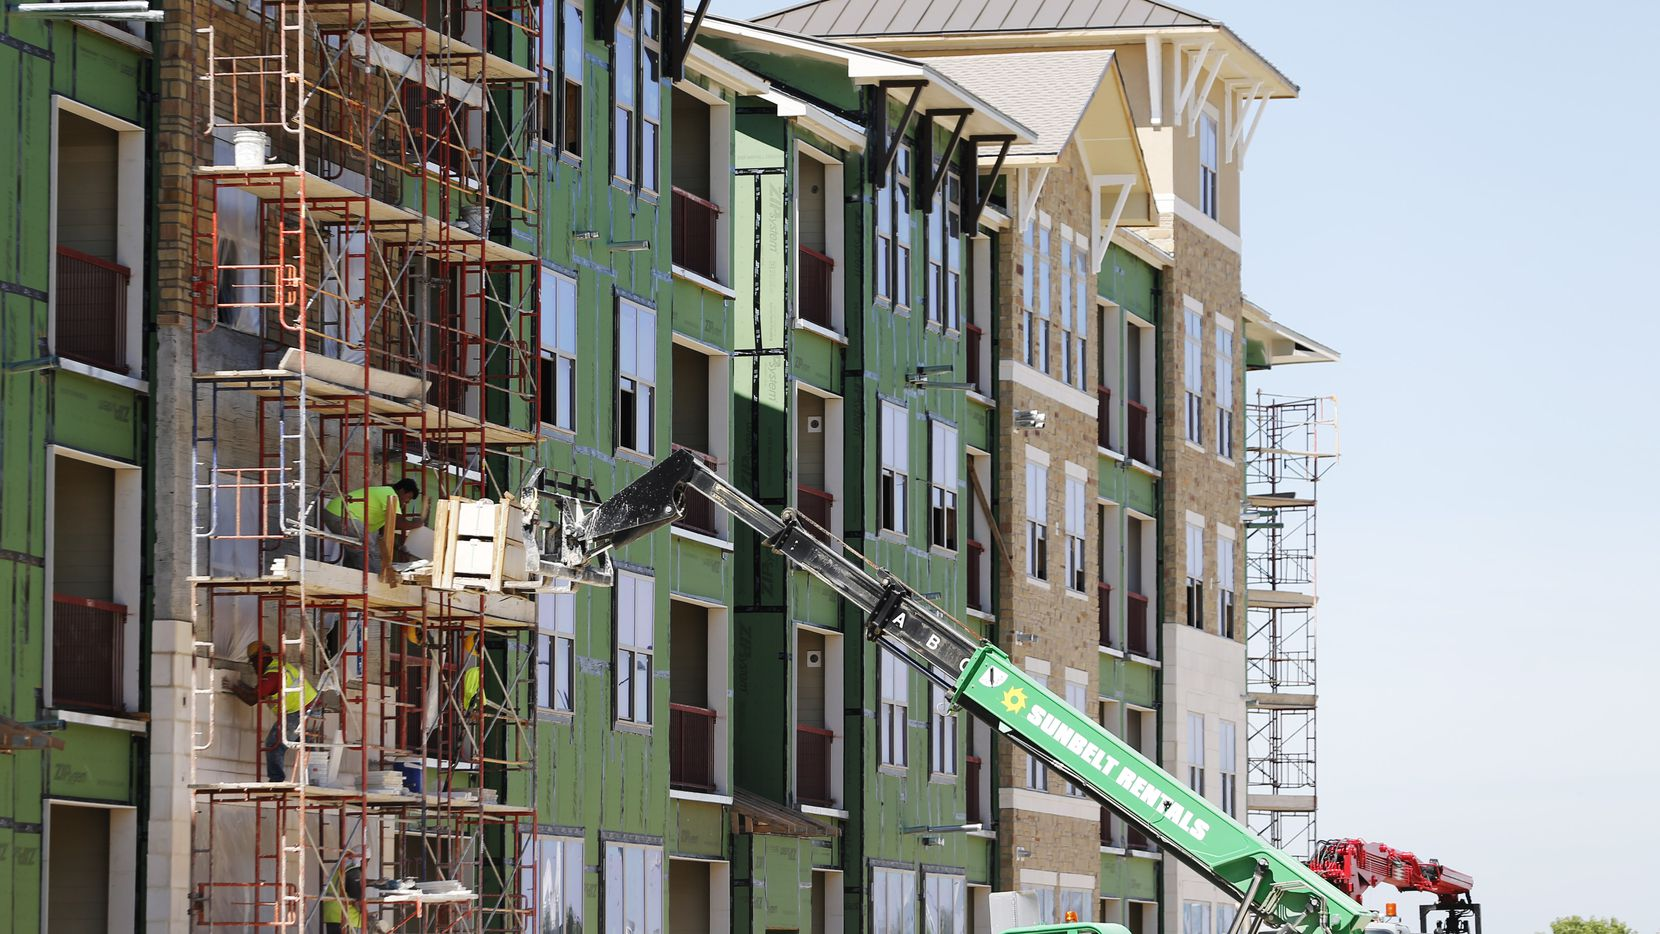 More than 30,000 apartments are being built in North Texas.